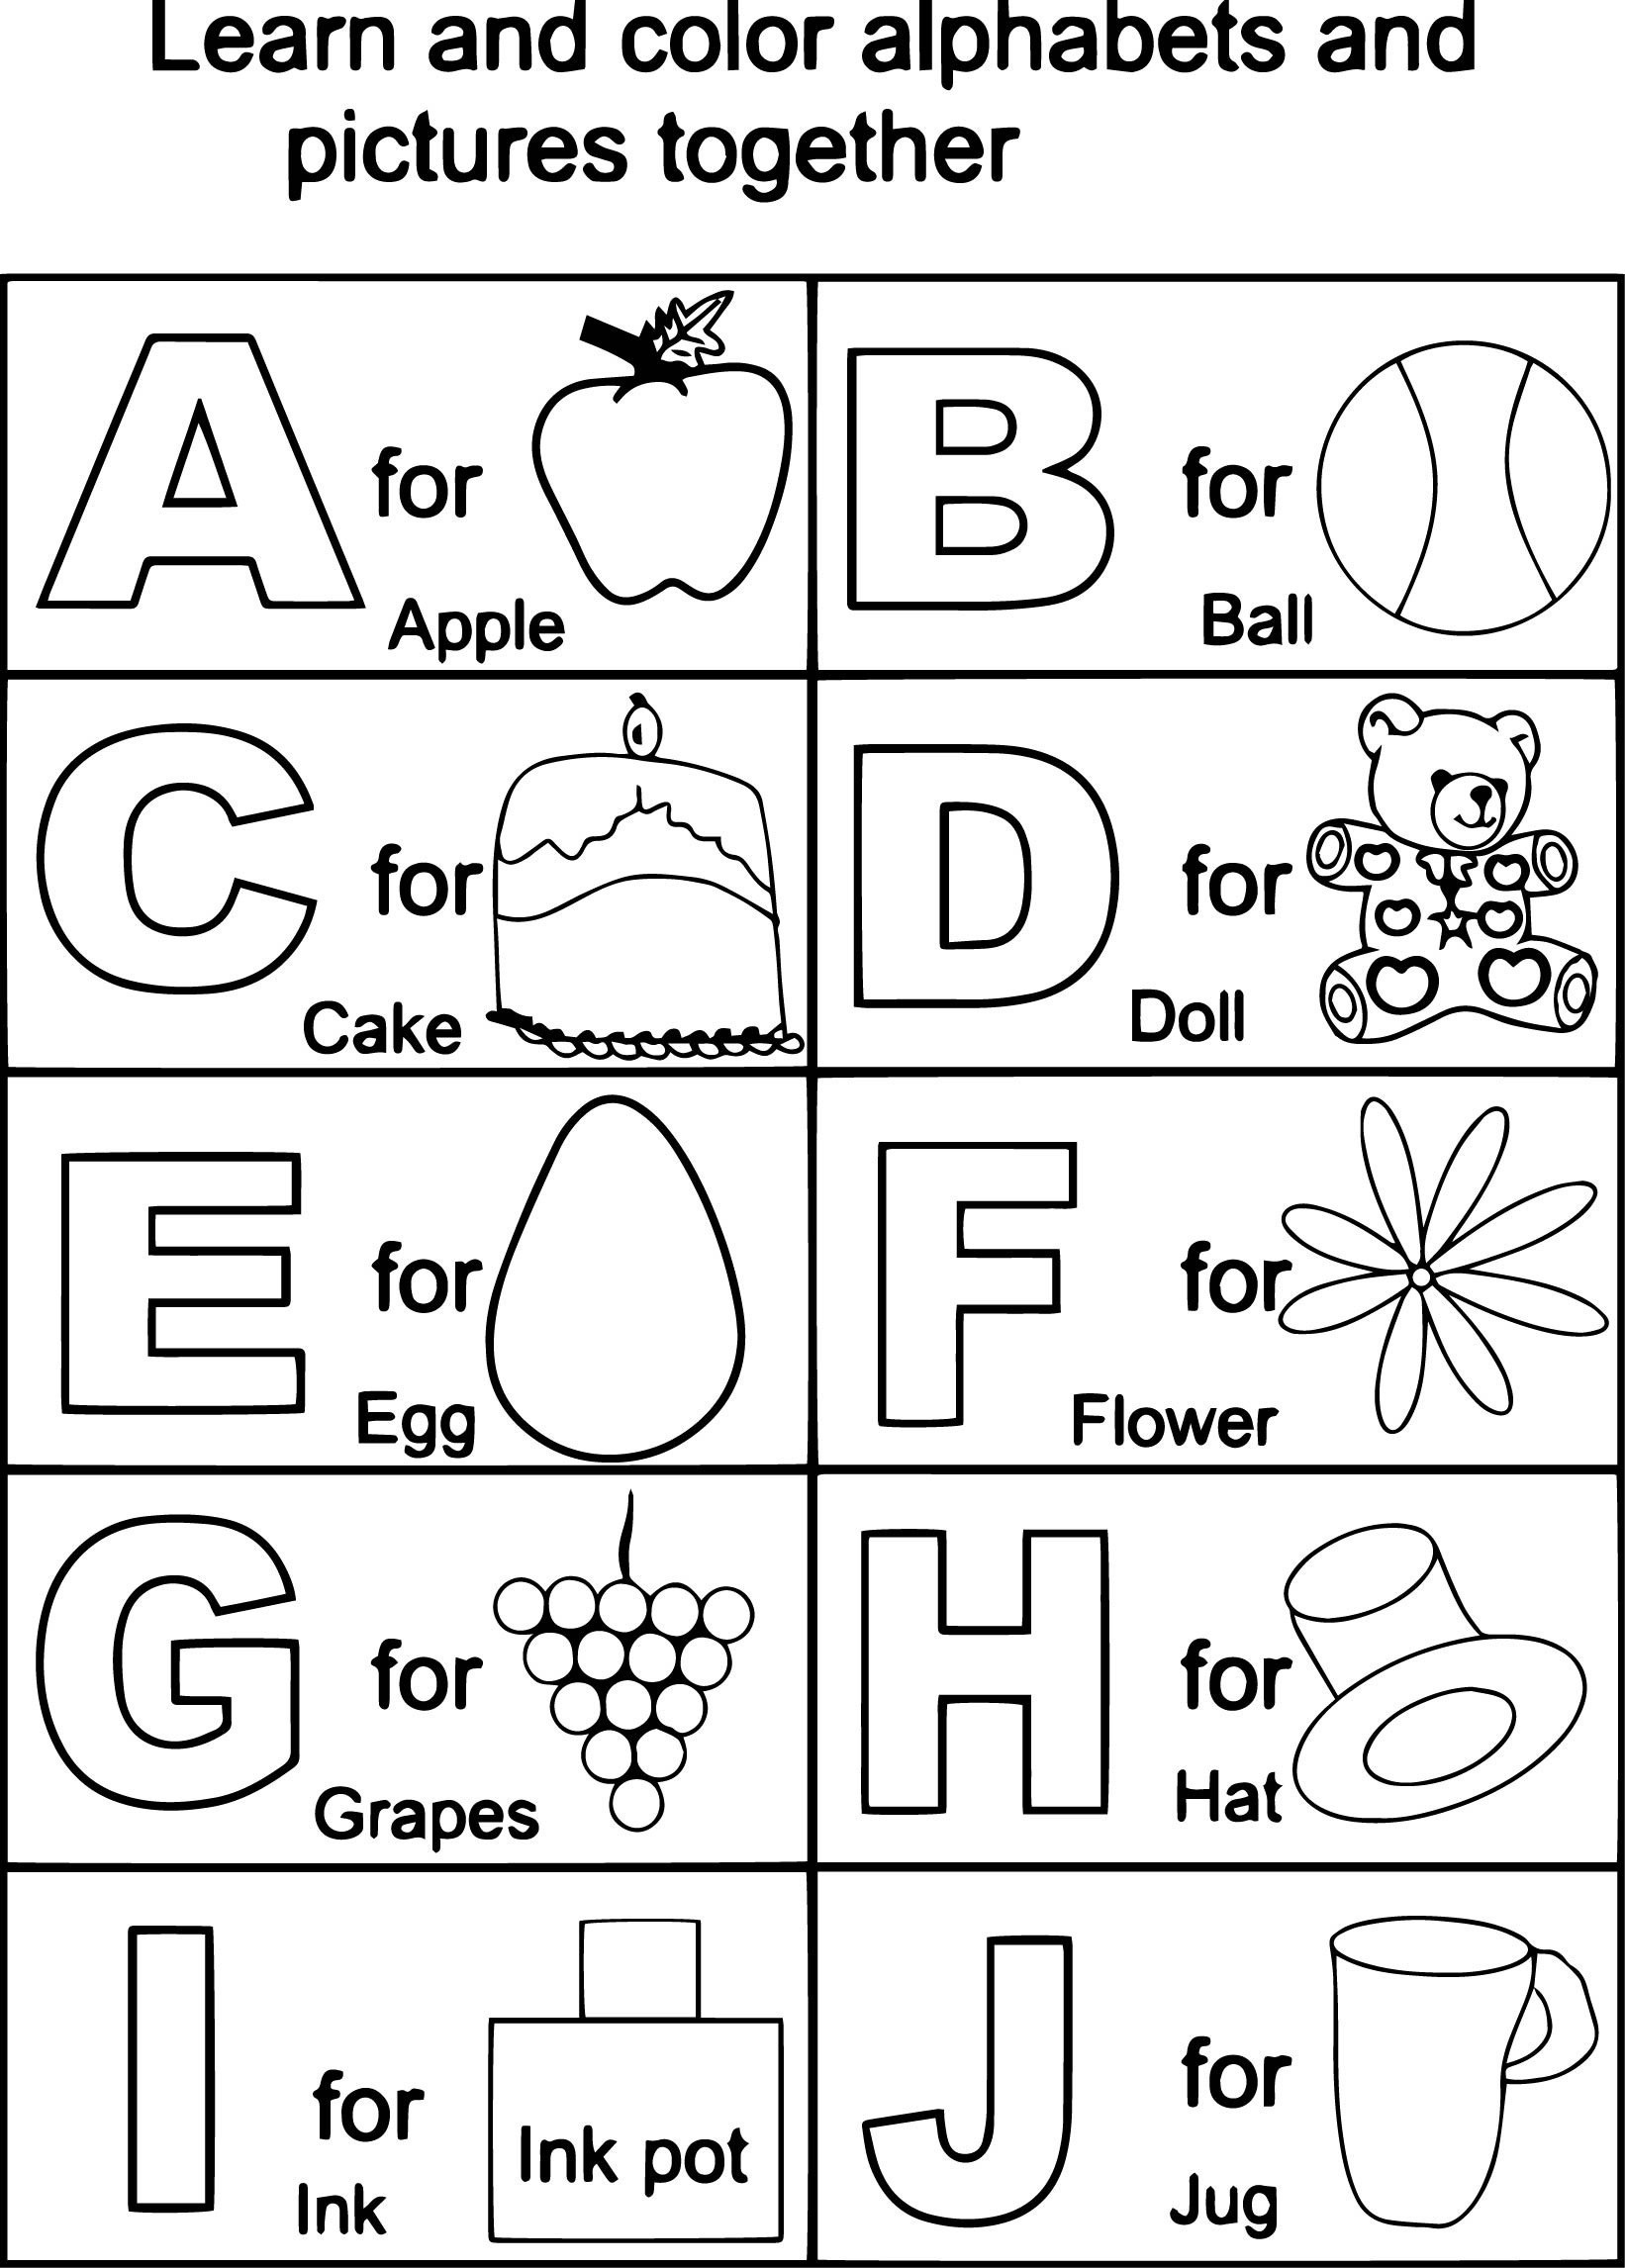 60 Alphabet Flash Cards To Print For Making Learning Fun